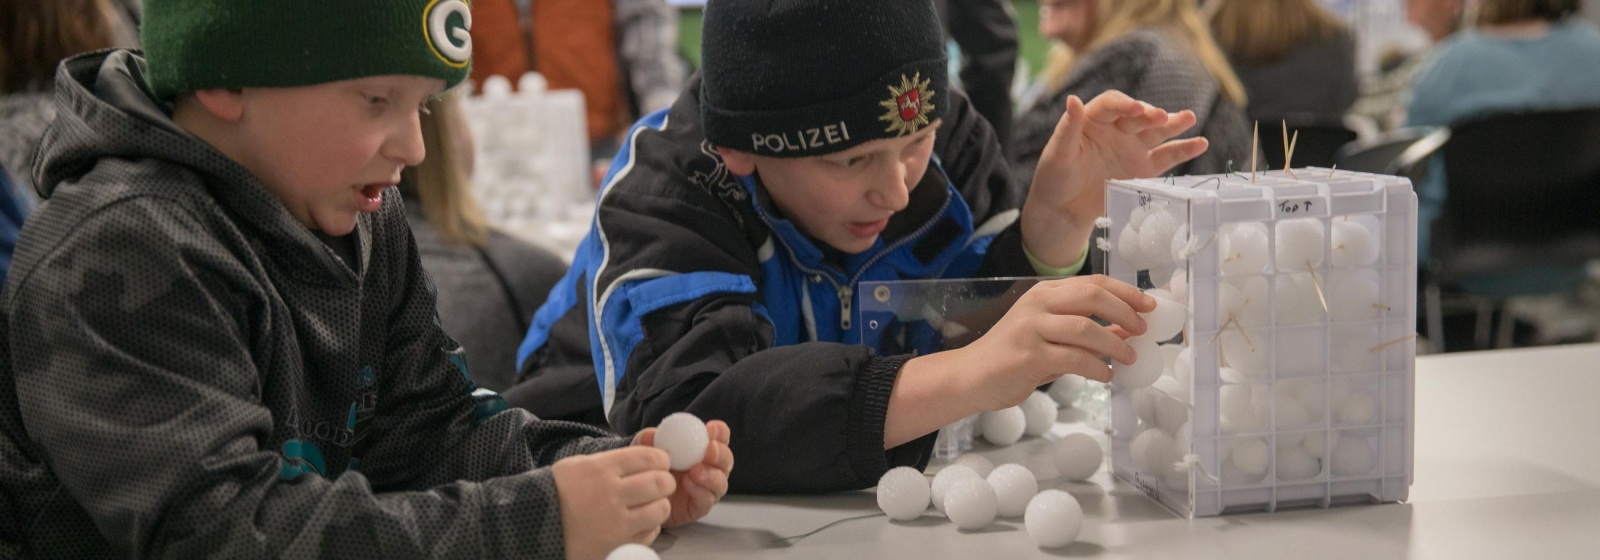 Students participate in a cavern building activity using foam balls and tooth picks as support.